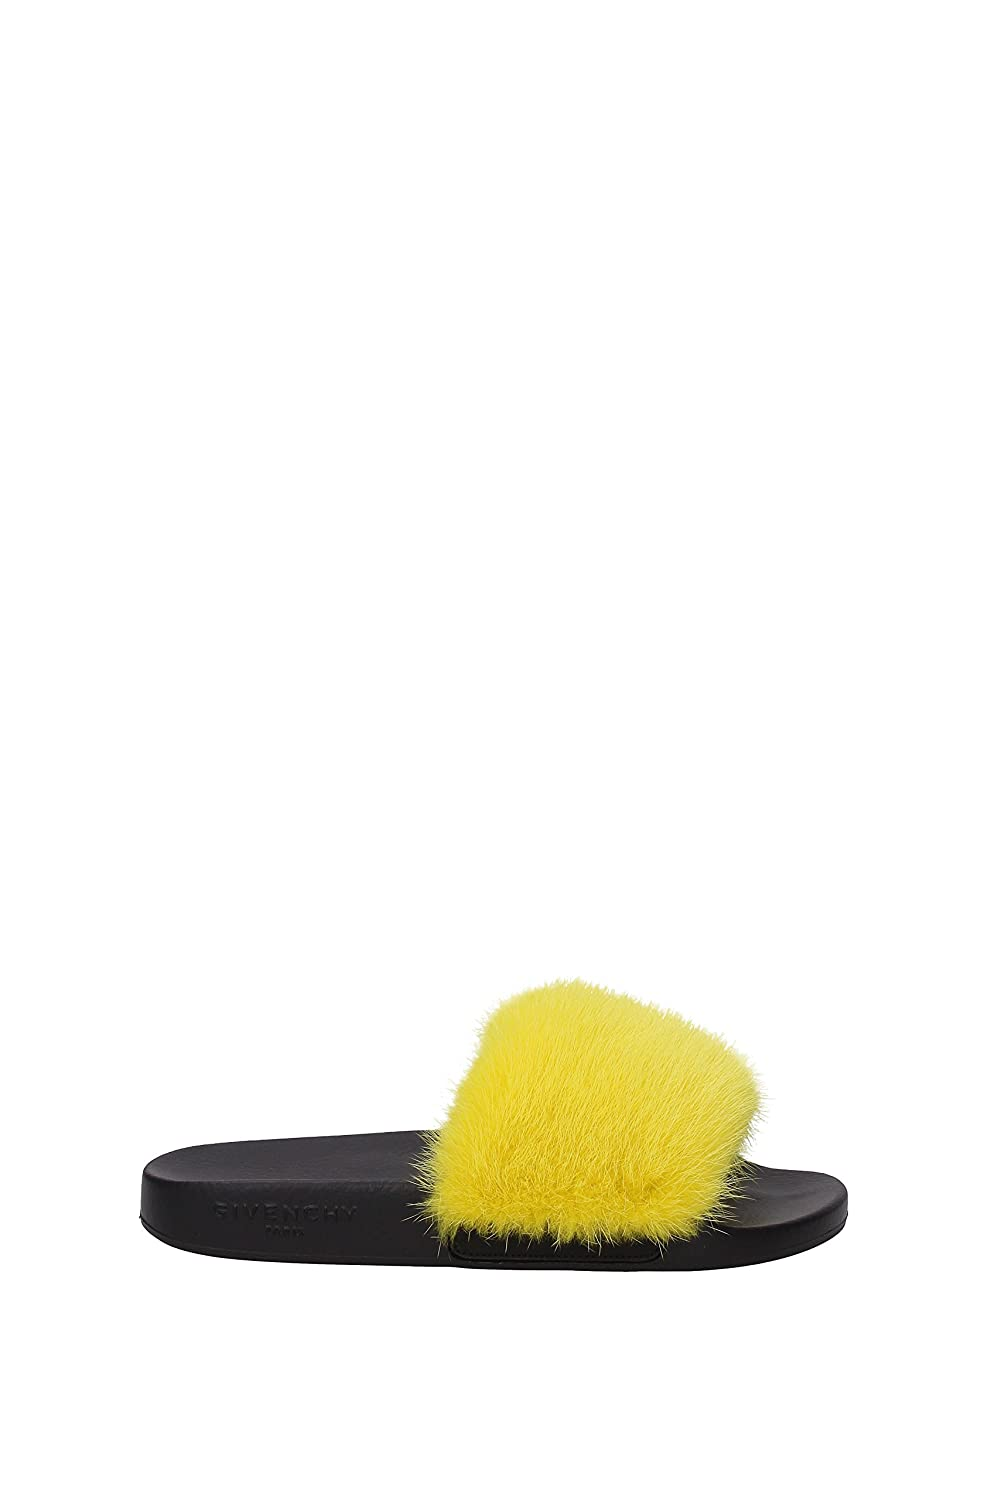 bfdd4bb92582 Amazon.com  Givenchy Mink Fur Pool Slide Sandal